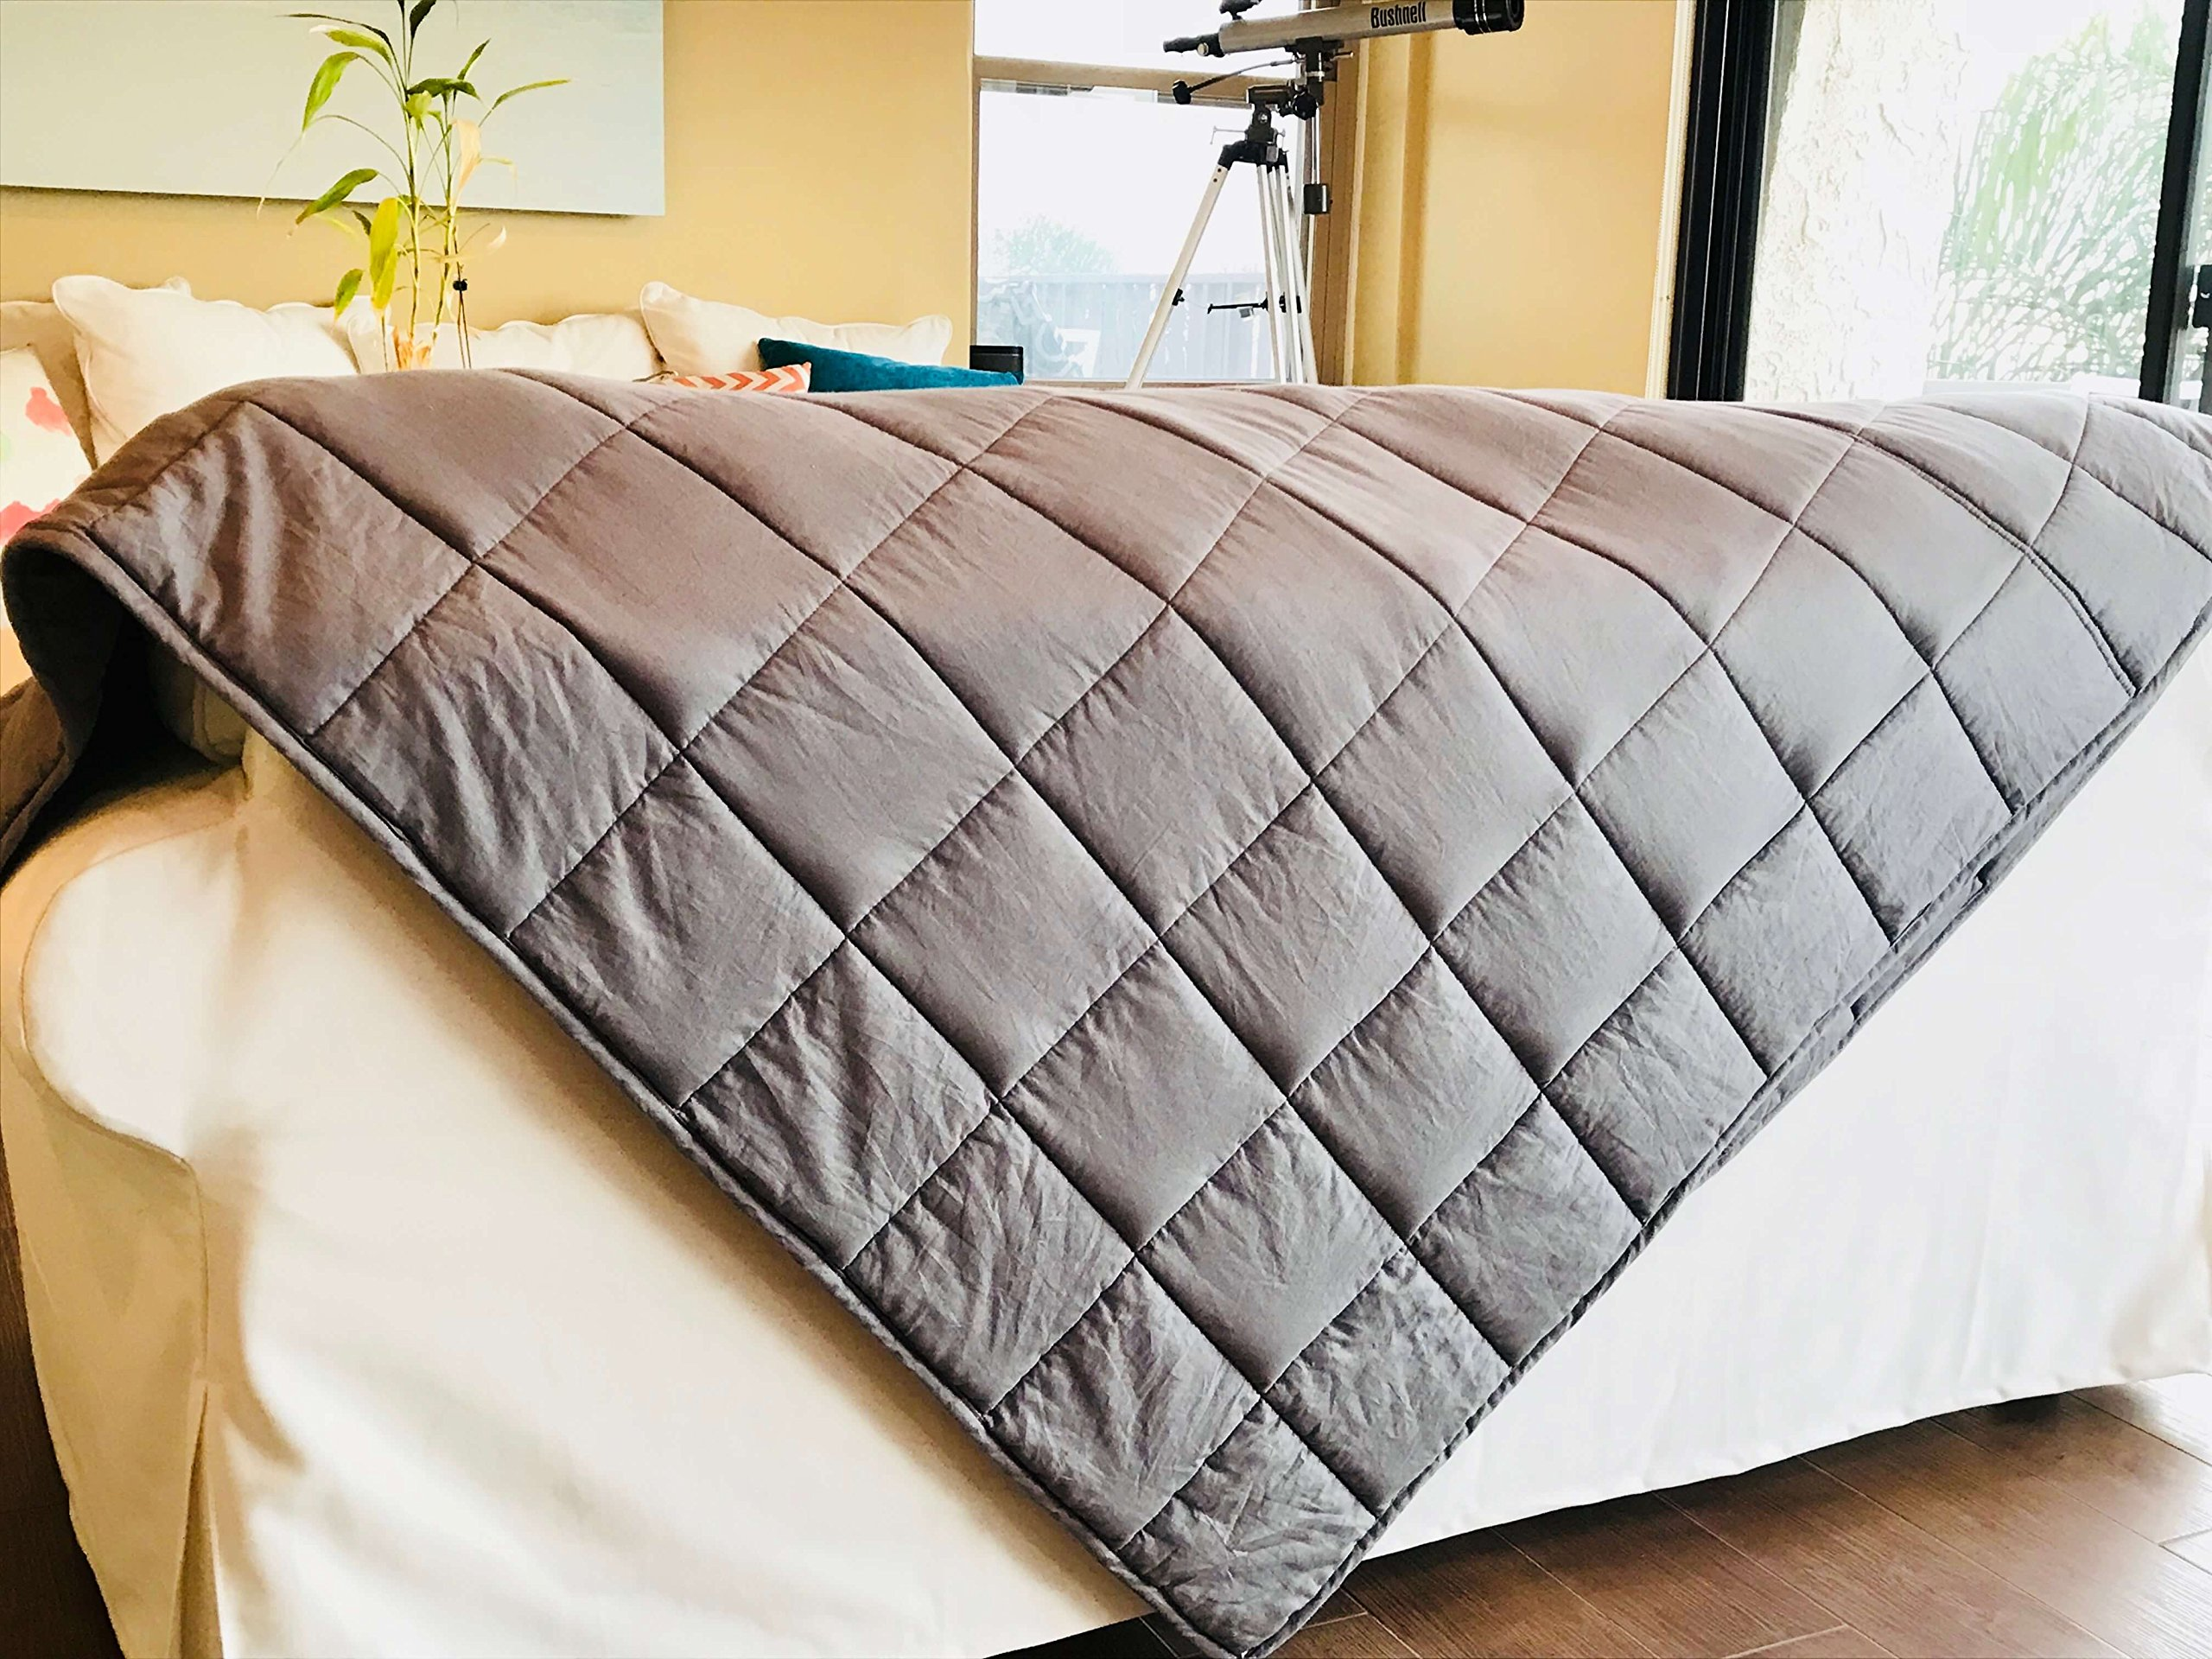 15lb Premium Weighted Blanket for Adults & Kids - Oversized 60''x 80'' Design – Let Gravity Help You Achieve a Deeper Sleep – Relief from Stress, Anxiety, Insomnia, Sensory Disorder, Autism, Depression